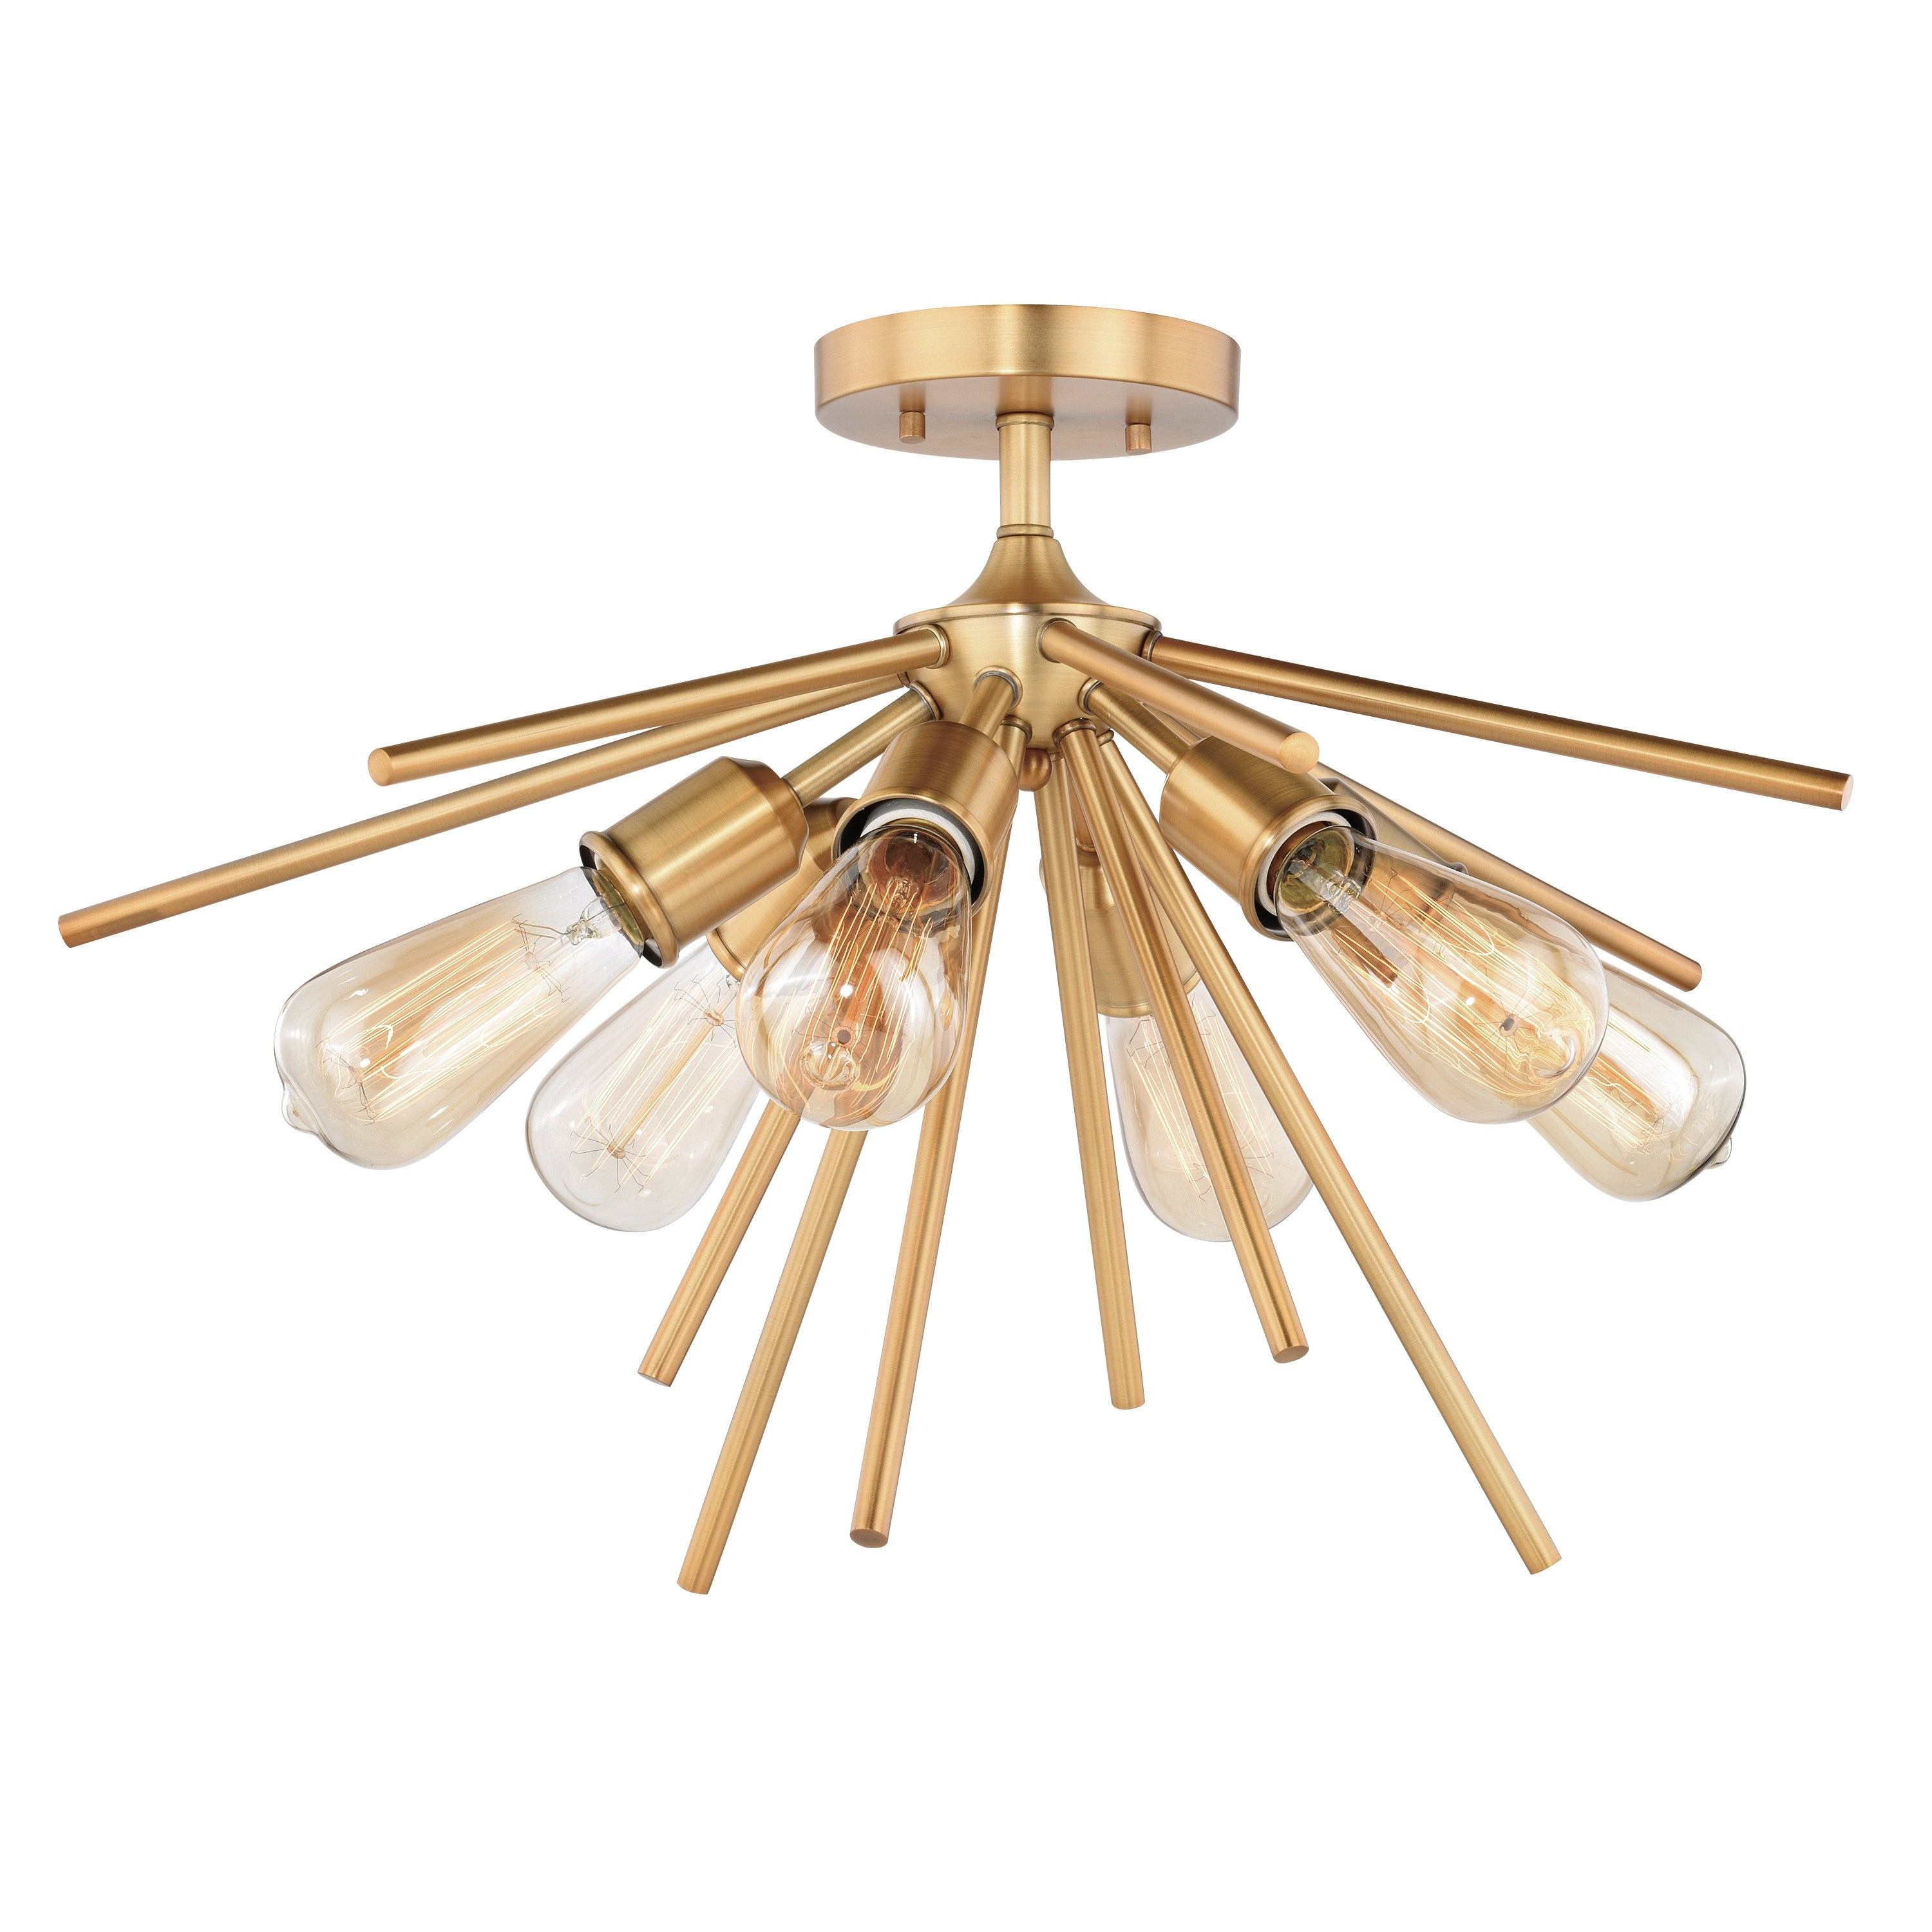 Image of: Shop Black Friday Deals On Estelle 24 In W Brass Mid Century Modern Sputnik Semi Flush Mount Ceiling Light 24 In W X 14 5 In H X 24 In D Overstock 20985871